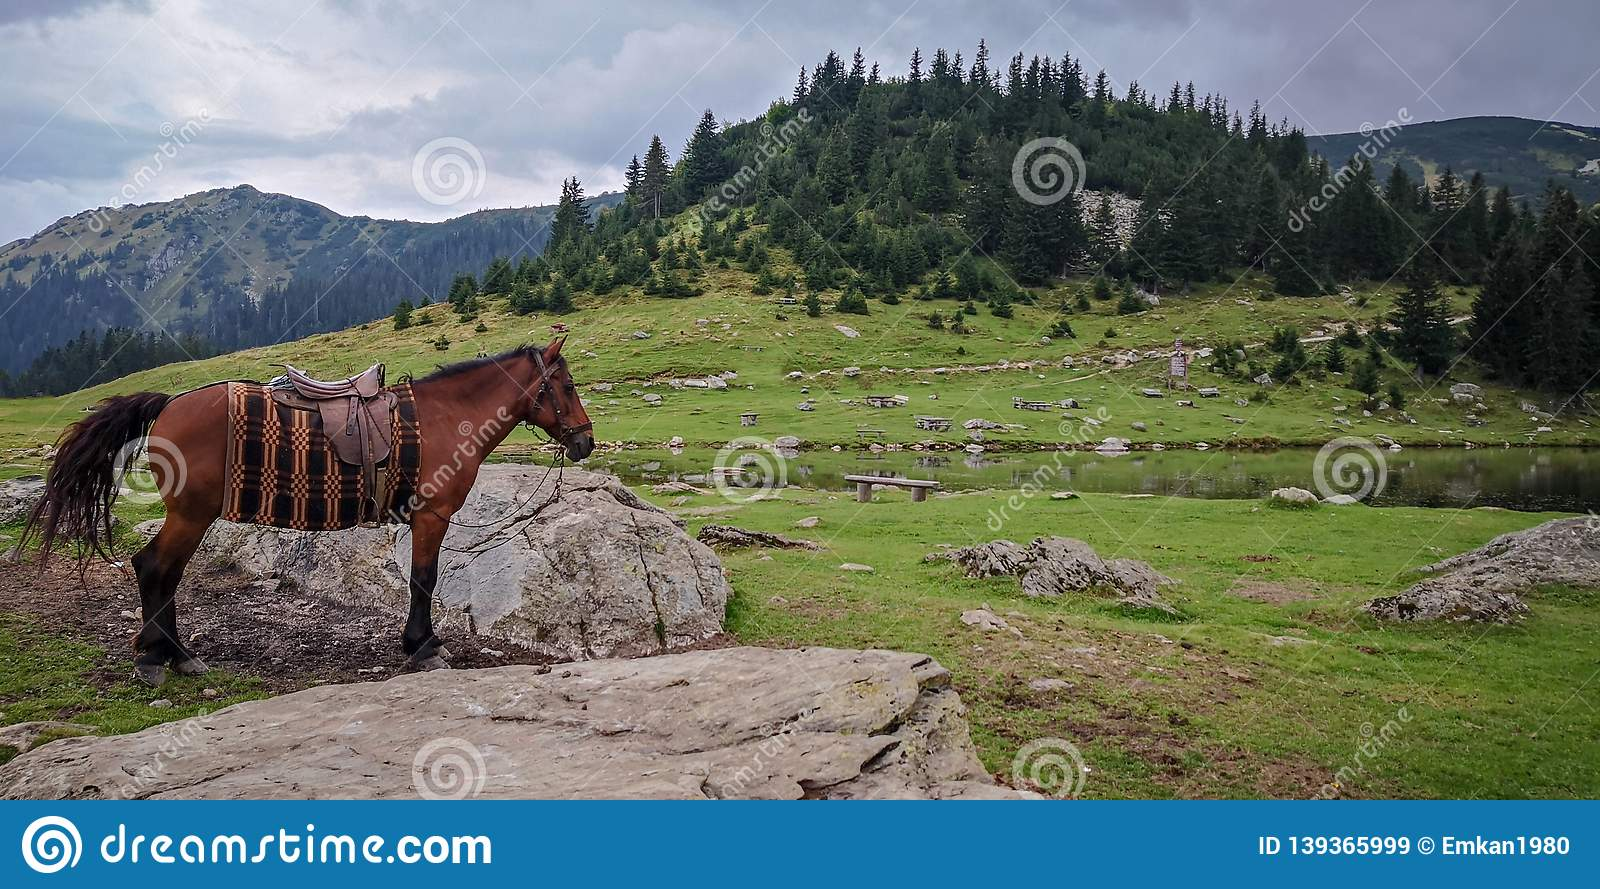 Beautiful look at horse with mountains in the background